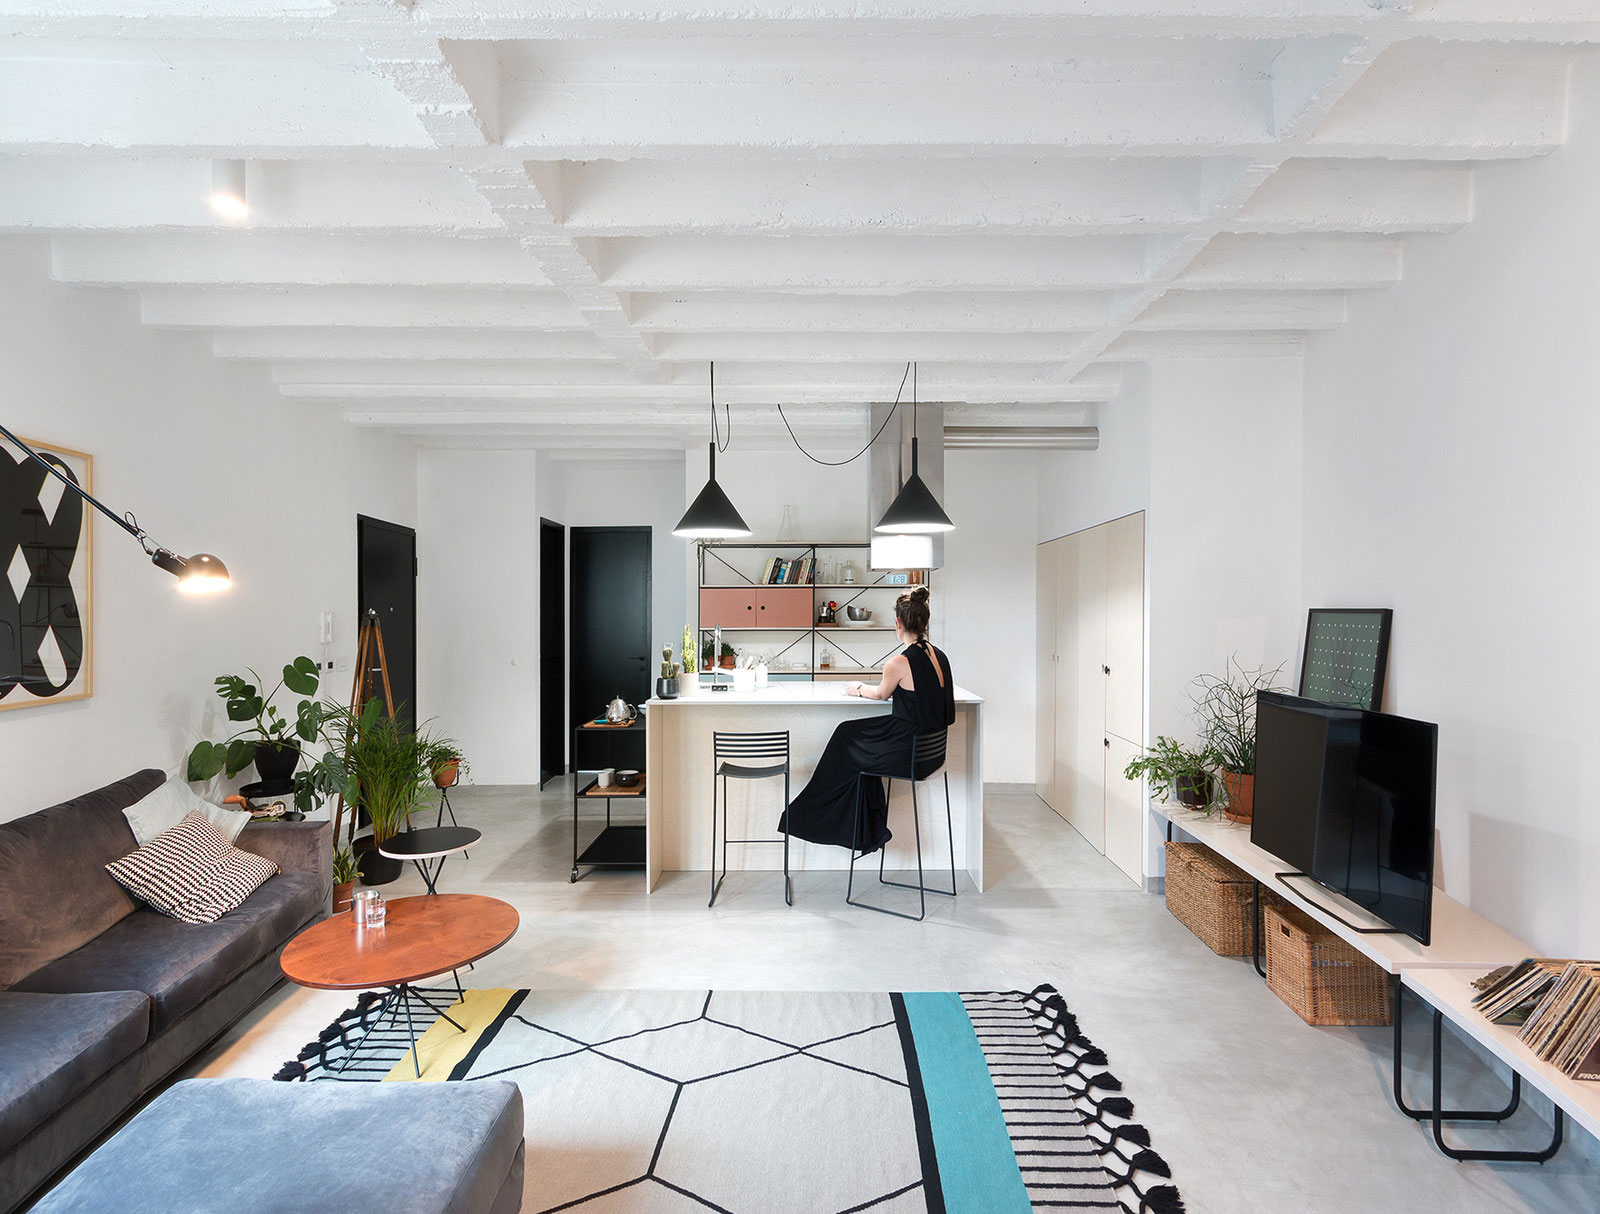 Most Popular Interior Design Styles: What's in for 2021 ... on Apartment Decorating Styles  id=77670